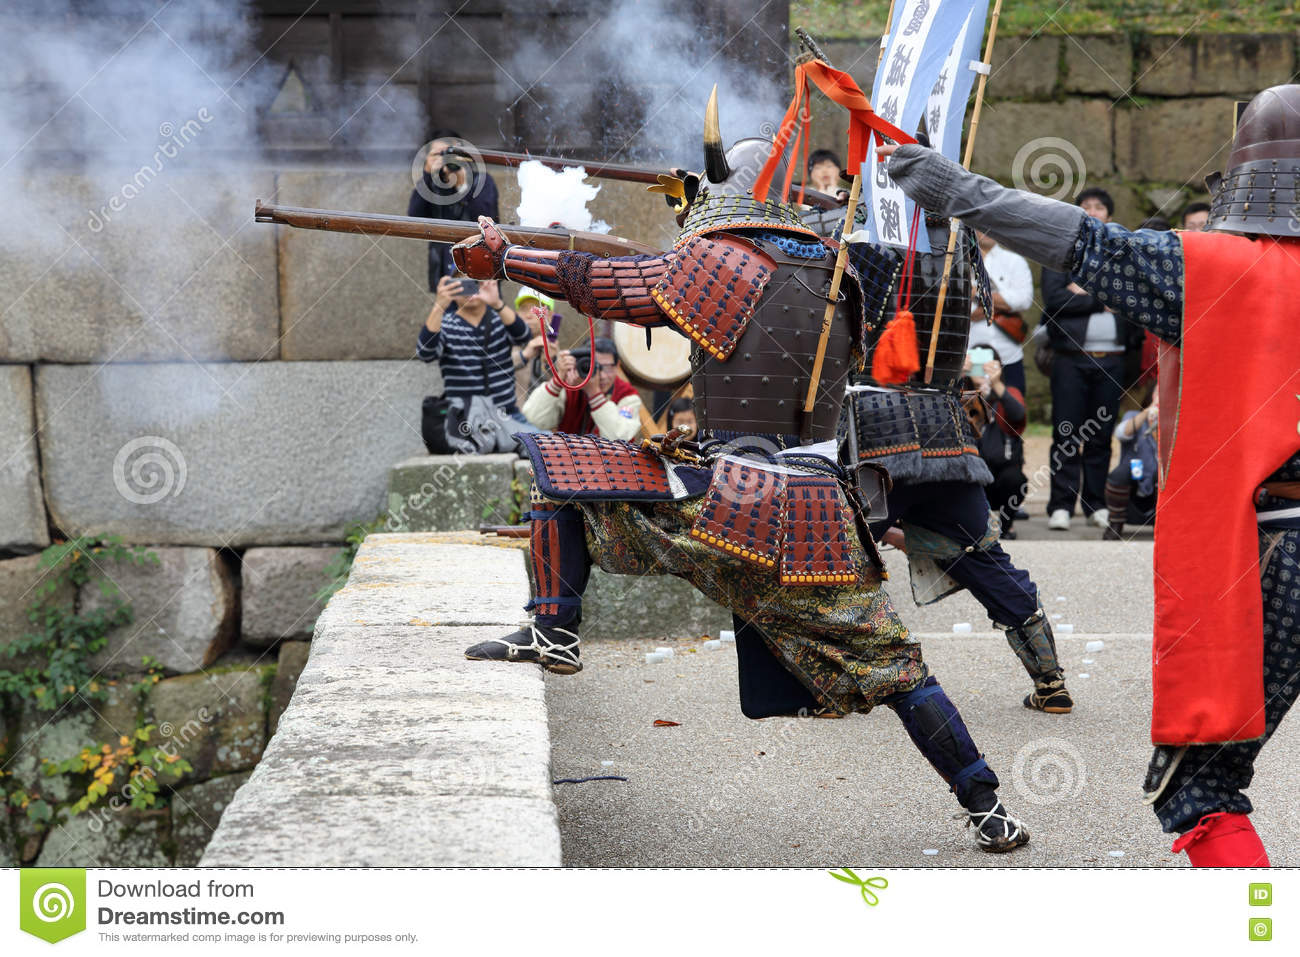 Japanese Samurai Clothing Uniform With Old Rifle Editorial Photography Image Of Fighter Japan 81223112